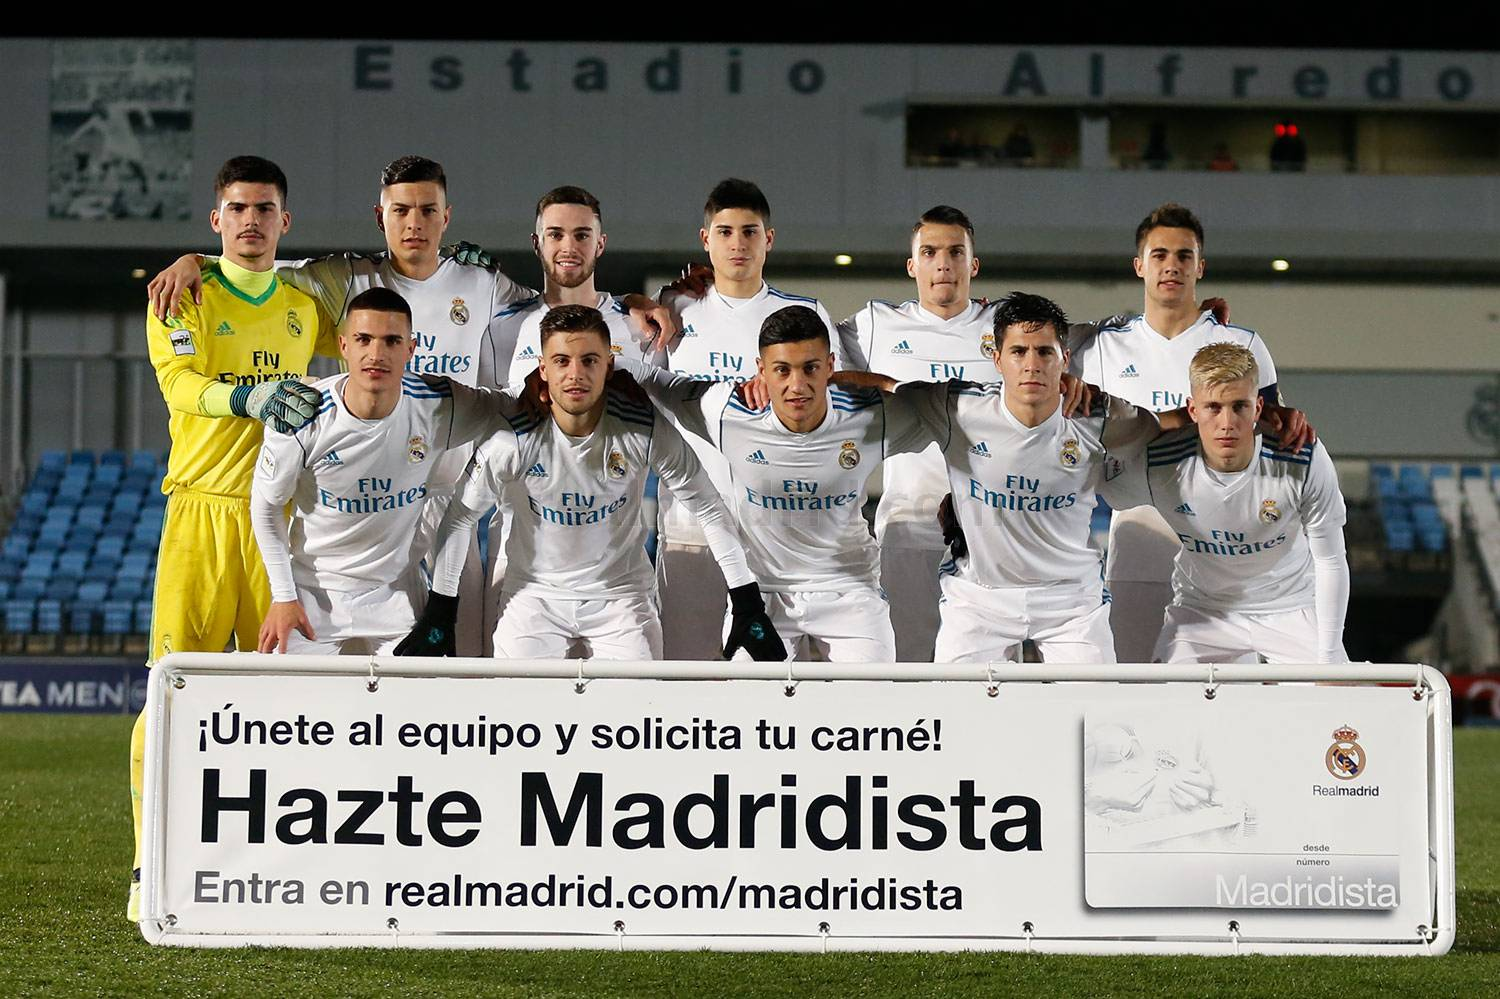 Real Madrid - Real Madrid Castilla - Coruxo - 14-01-2018